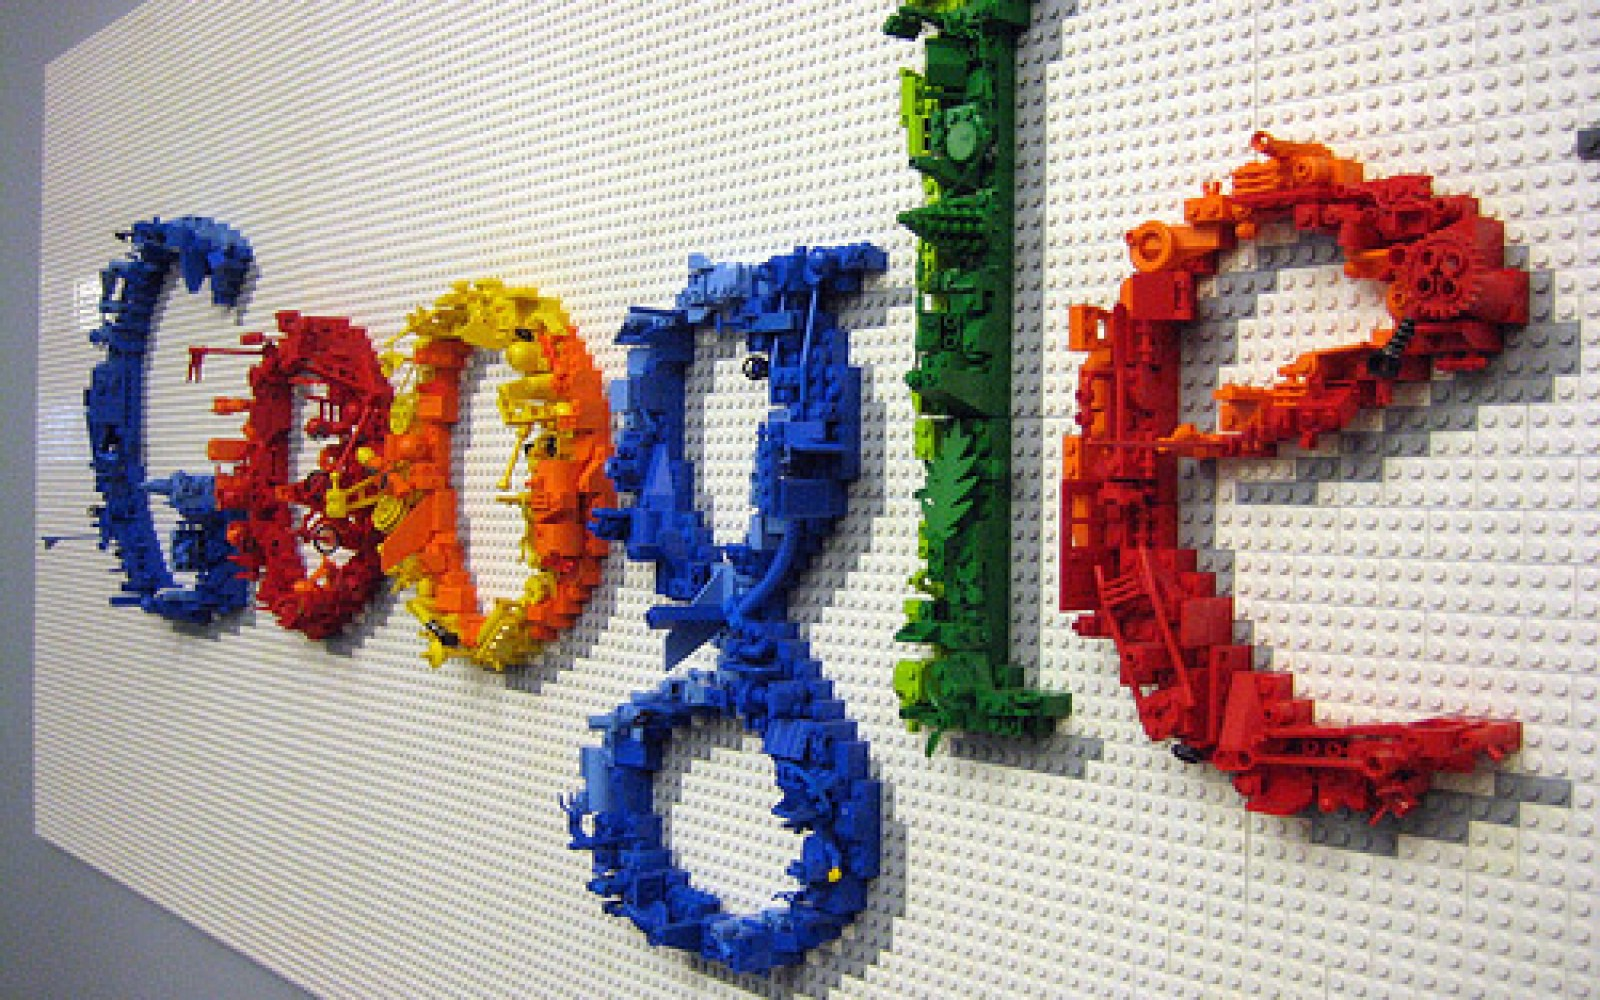 Google's Q2 2014 earnings call scheduled for July 17th at 1:30pm PDT